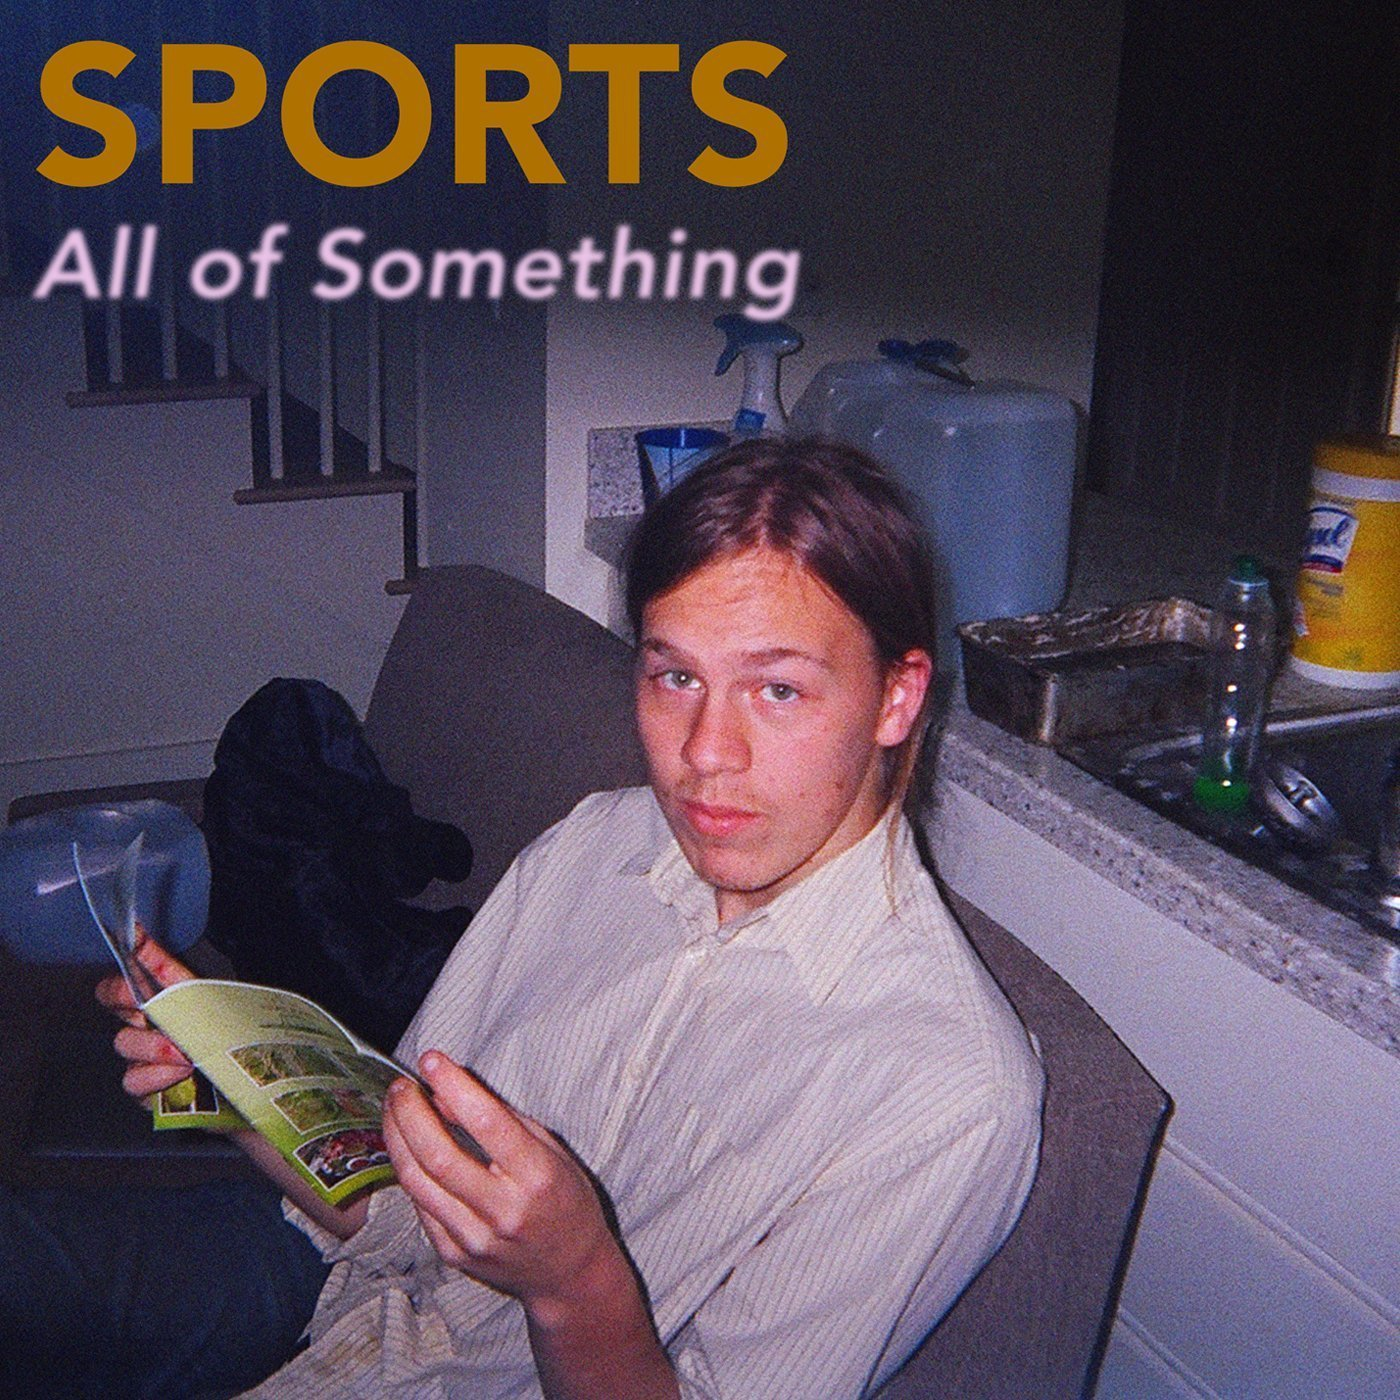 SPORTS: All Of Something [Album Review]